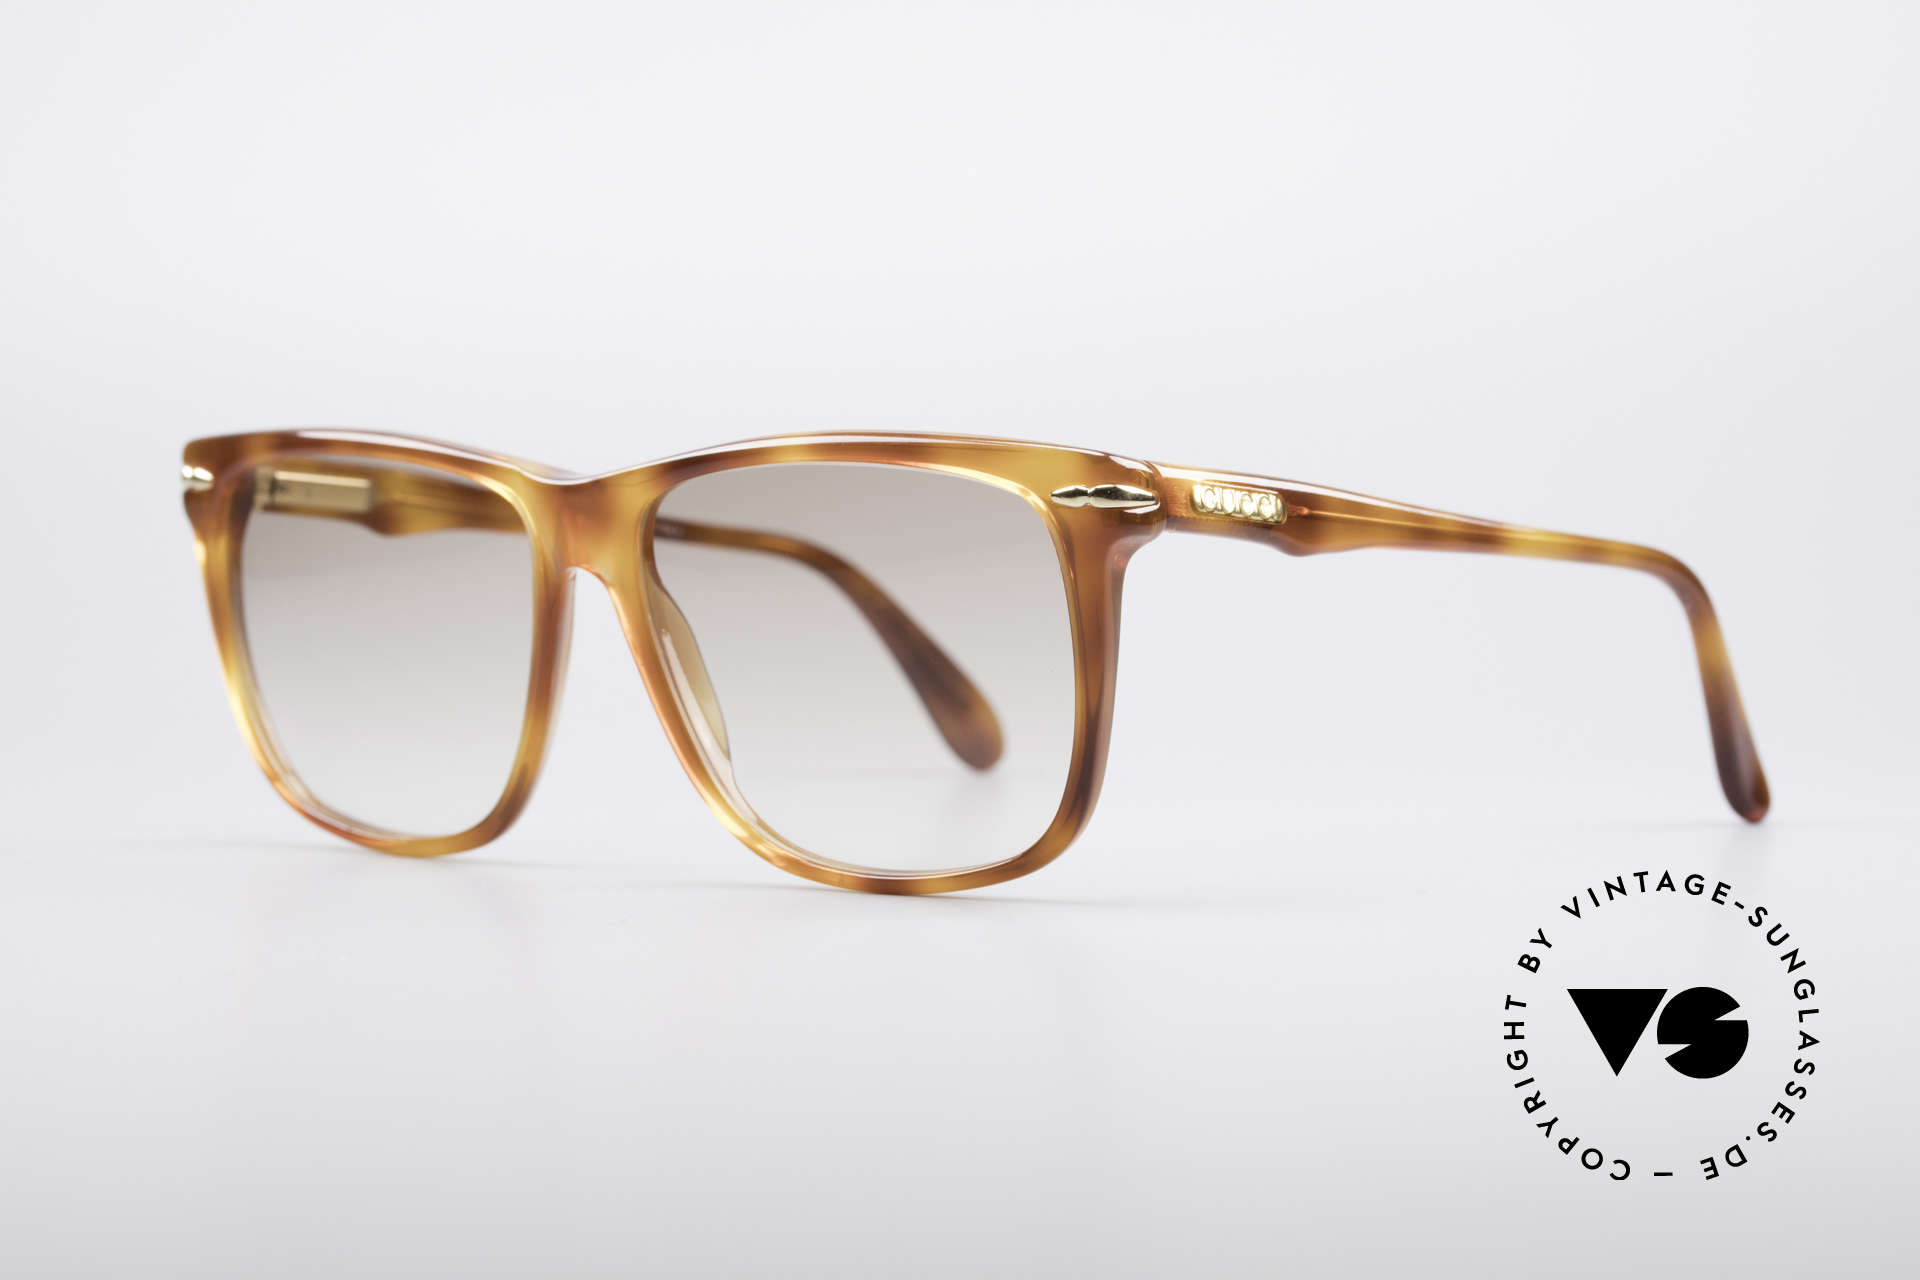 Gucci 1115 Classic 80's Sunglasses, 1. class comfort thanks to flexible spring hinges, Made for Men